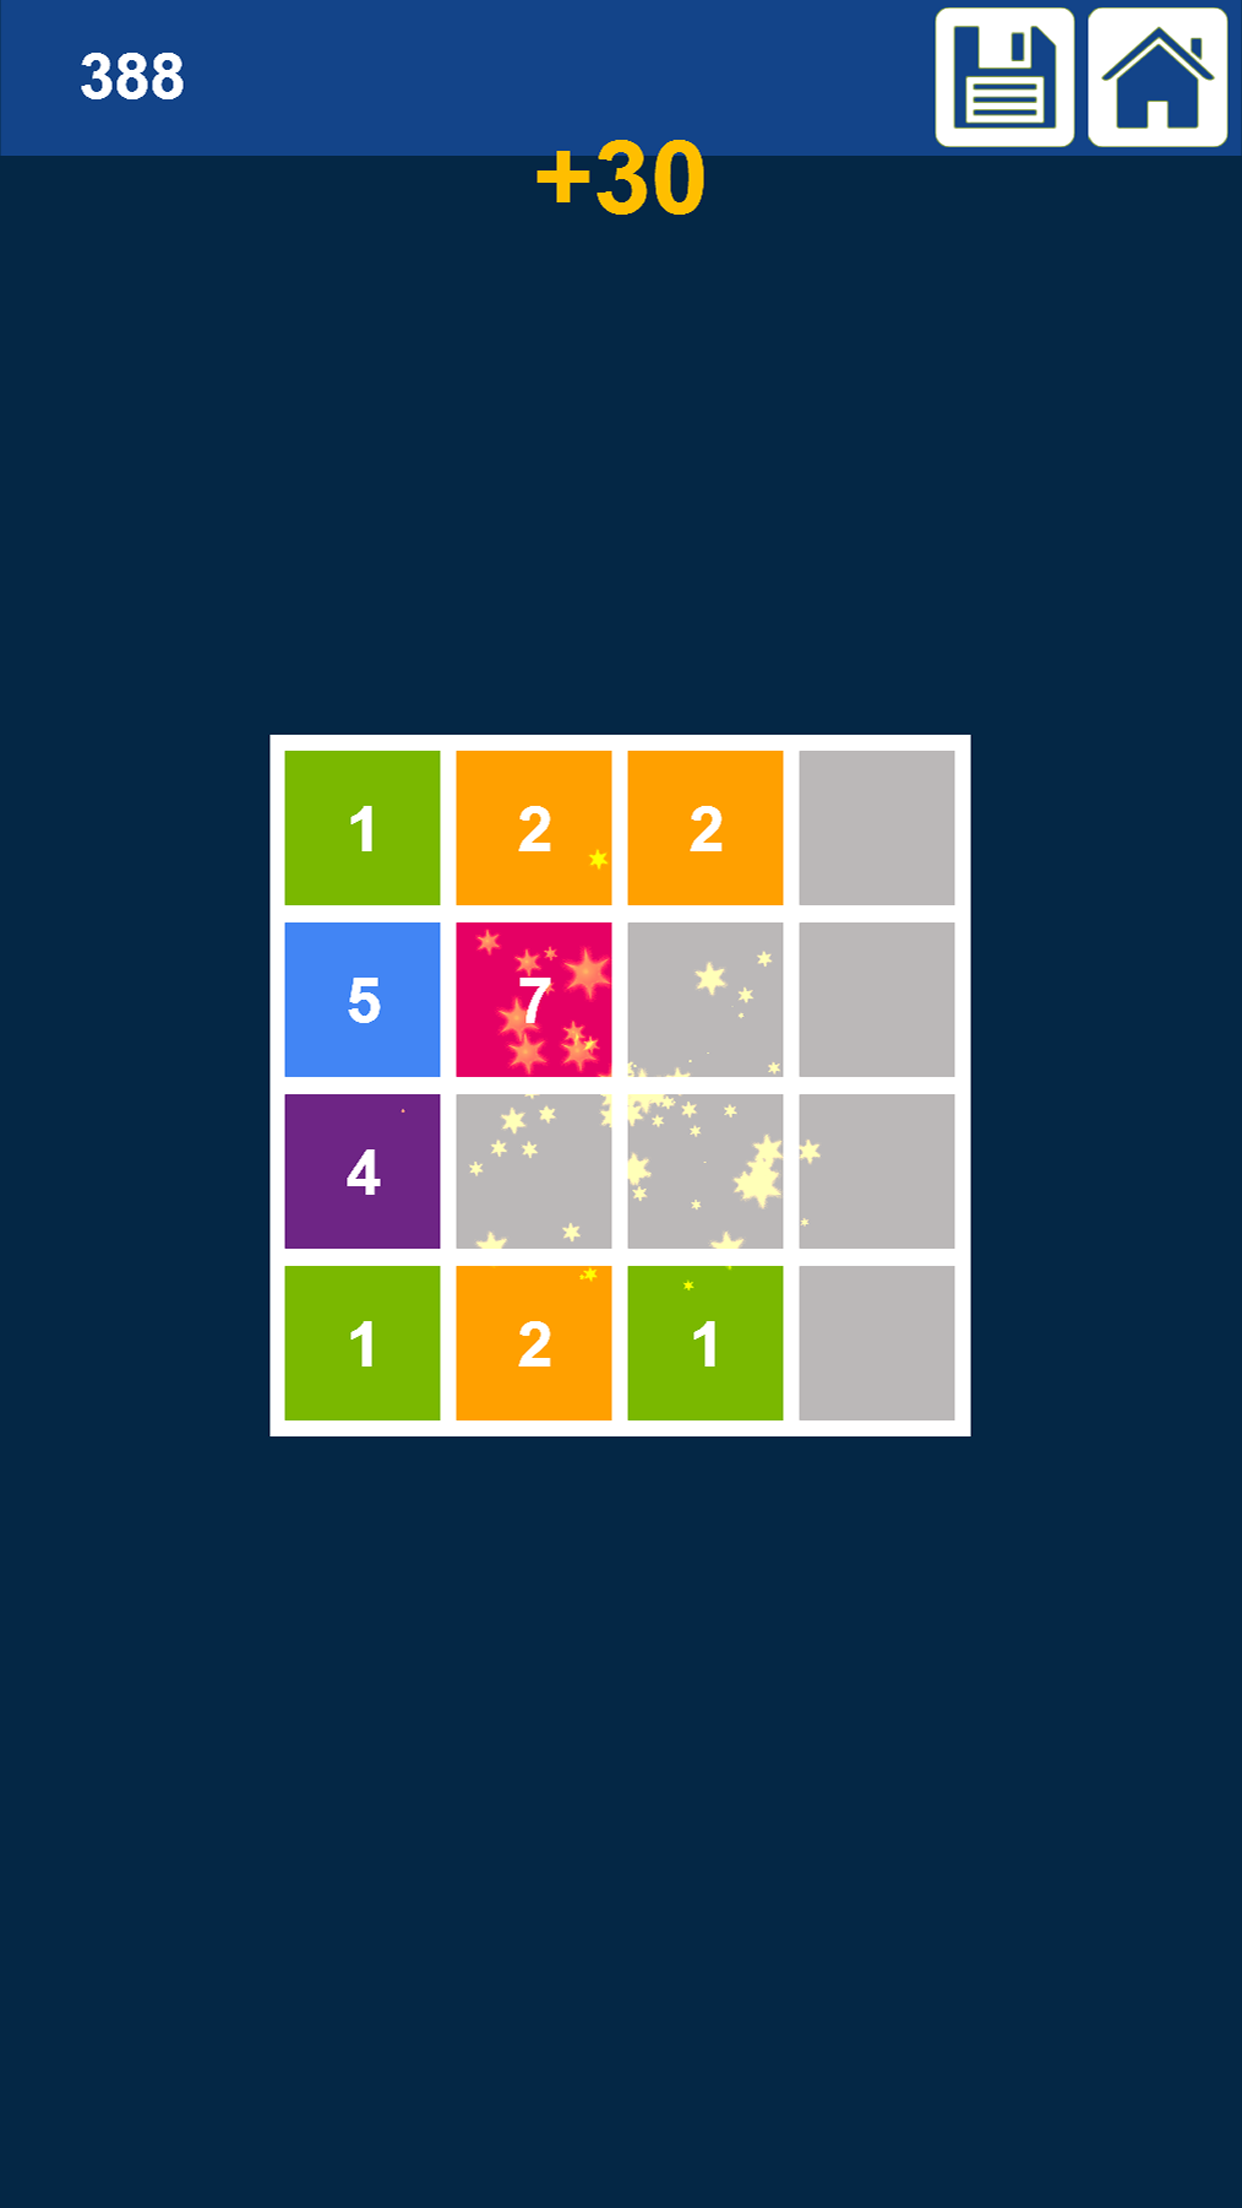 Tired of 2048? Try 33